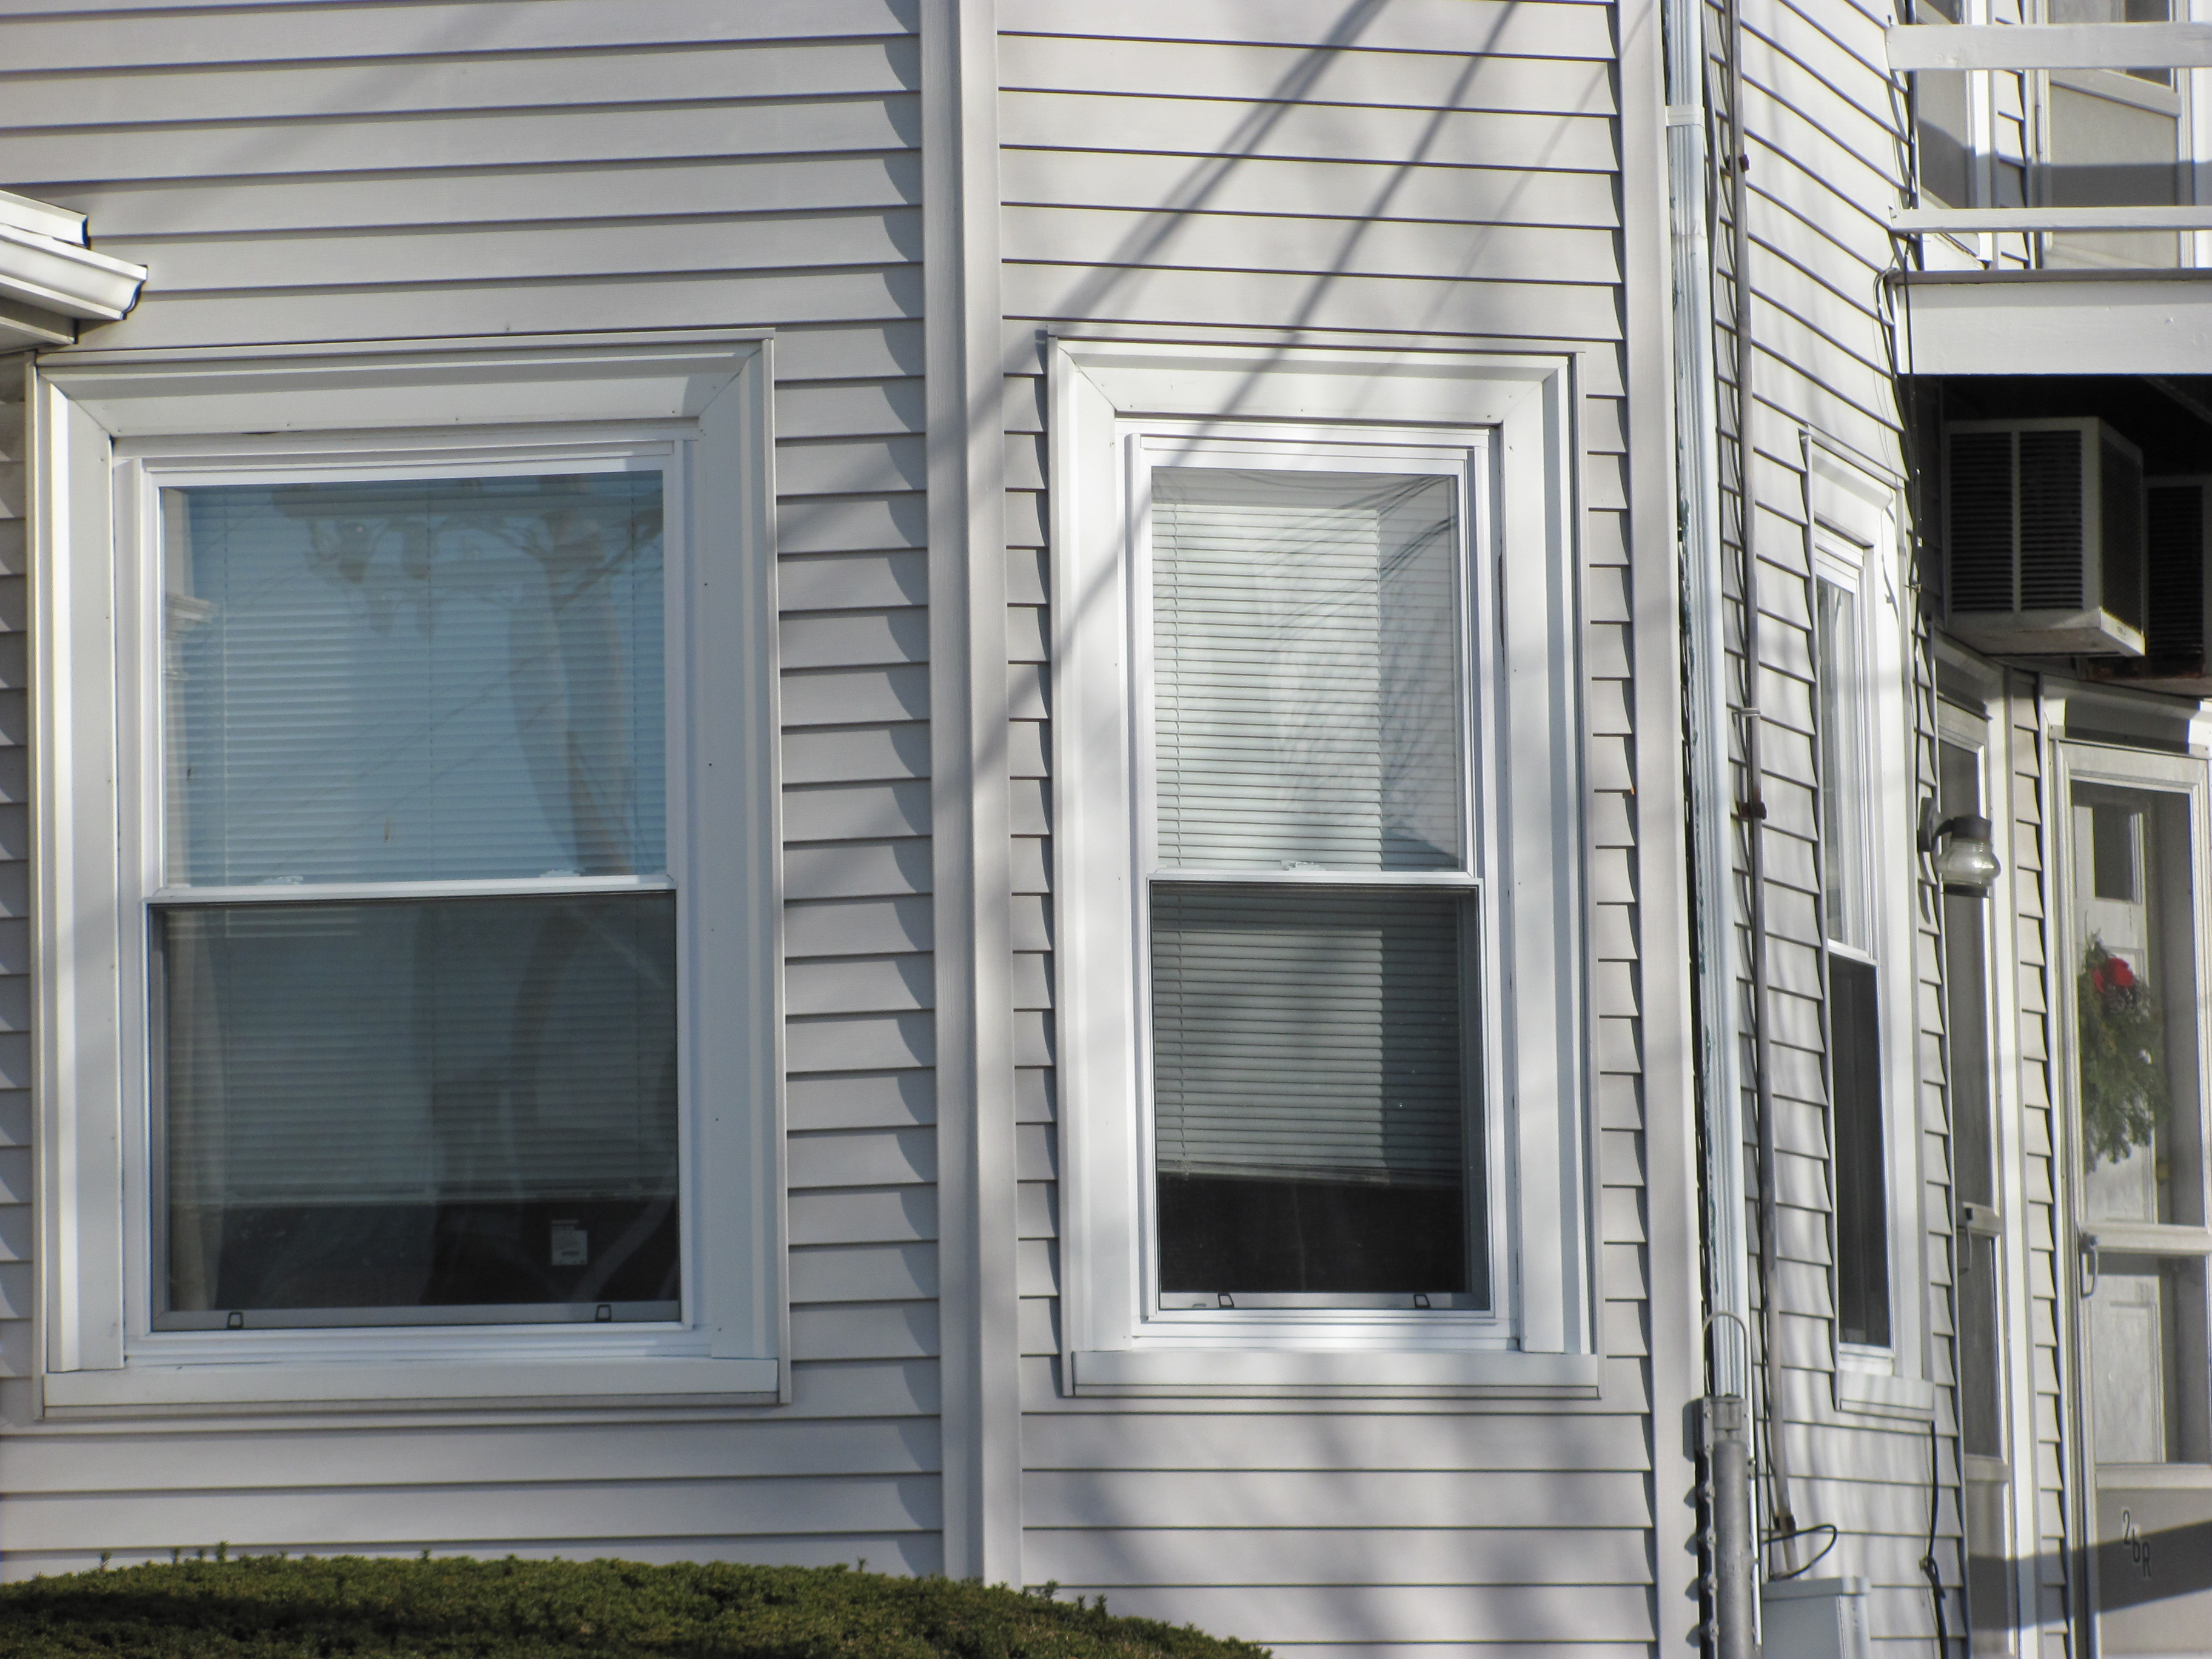 Window projects completed in the waltham ma area vinyl for Vinyl window manufacturers